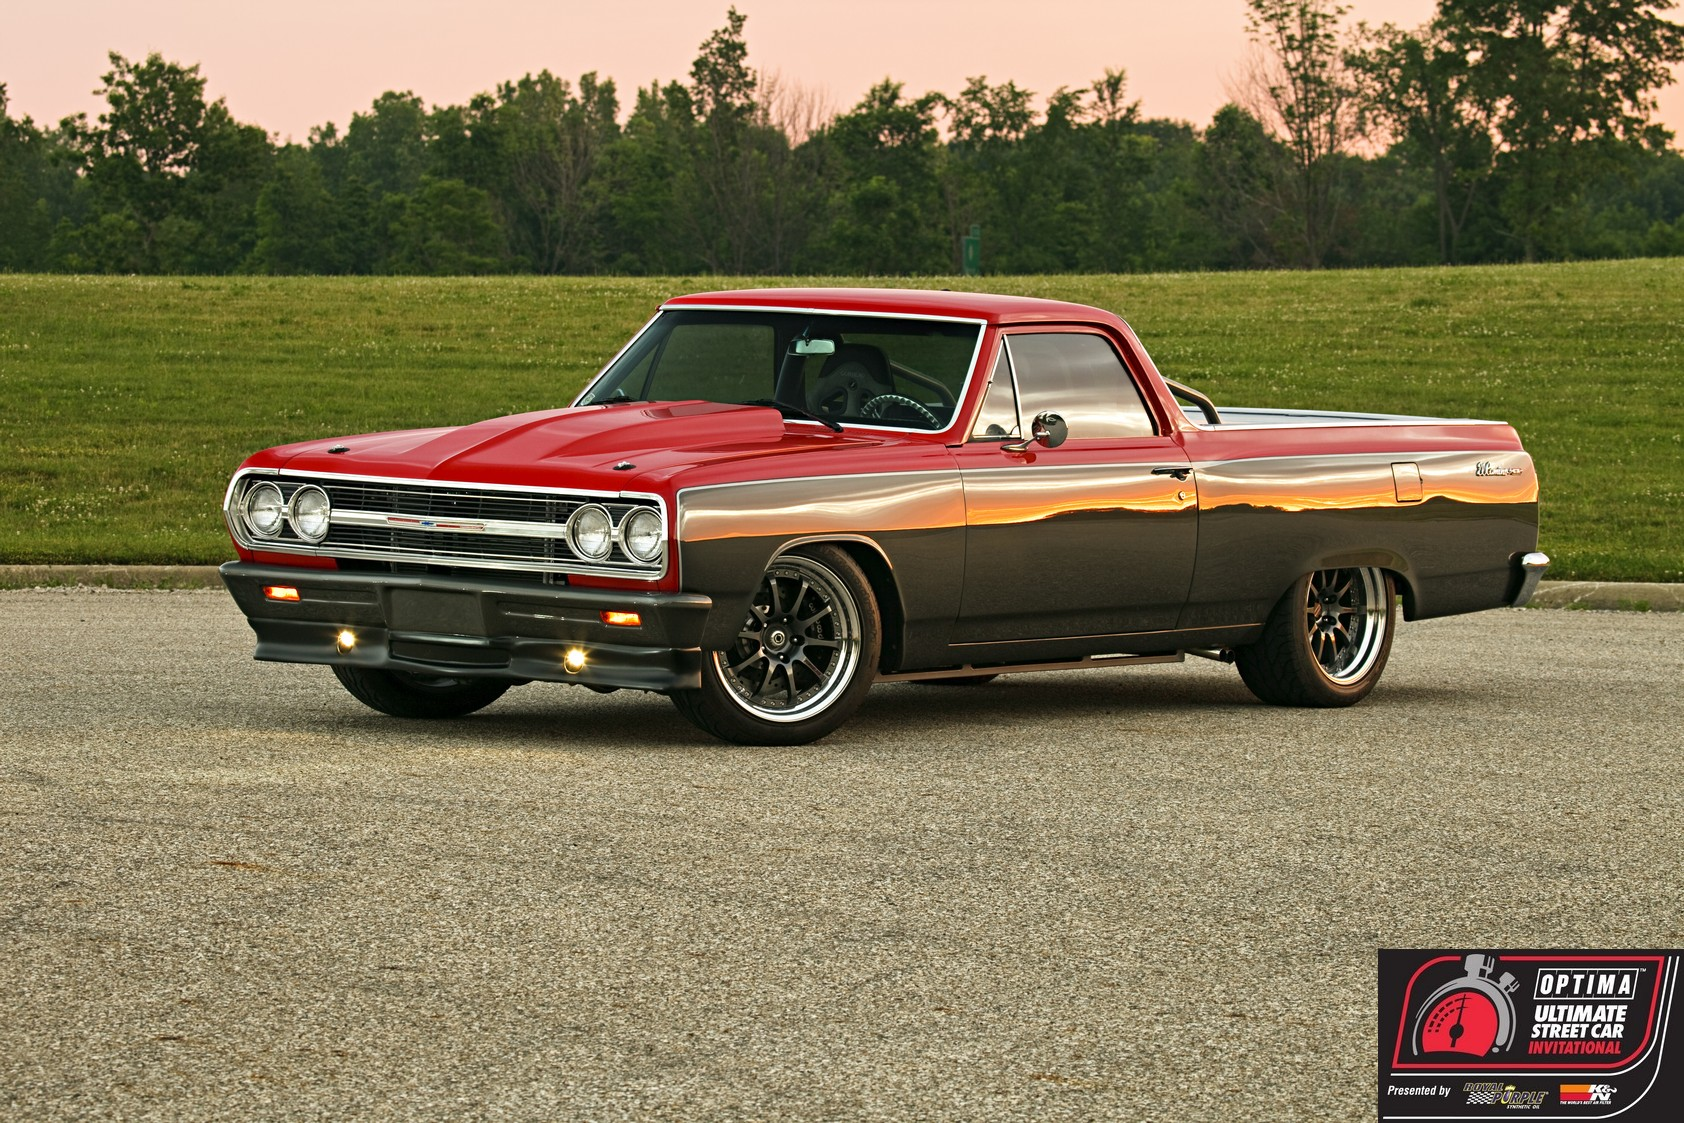 2013 OUSCI Preview- Mike Holleman's 1965 Chevrolet El Camino